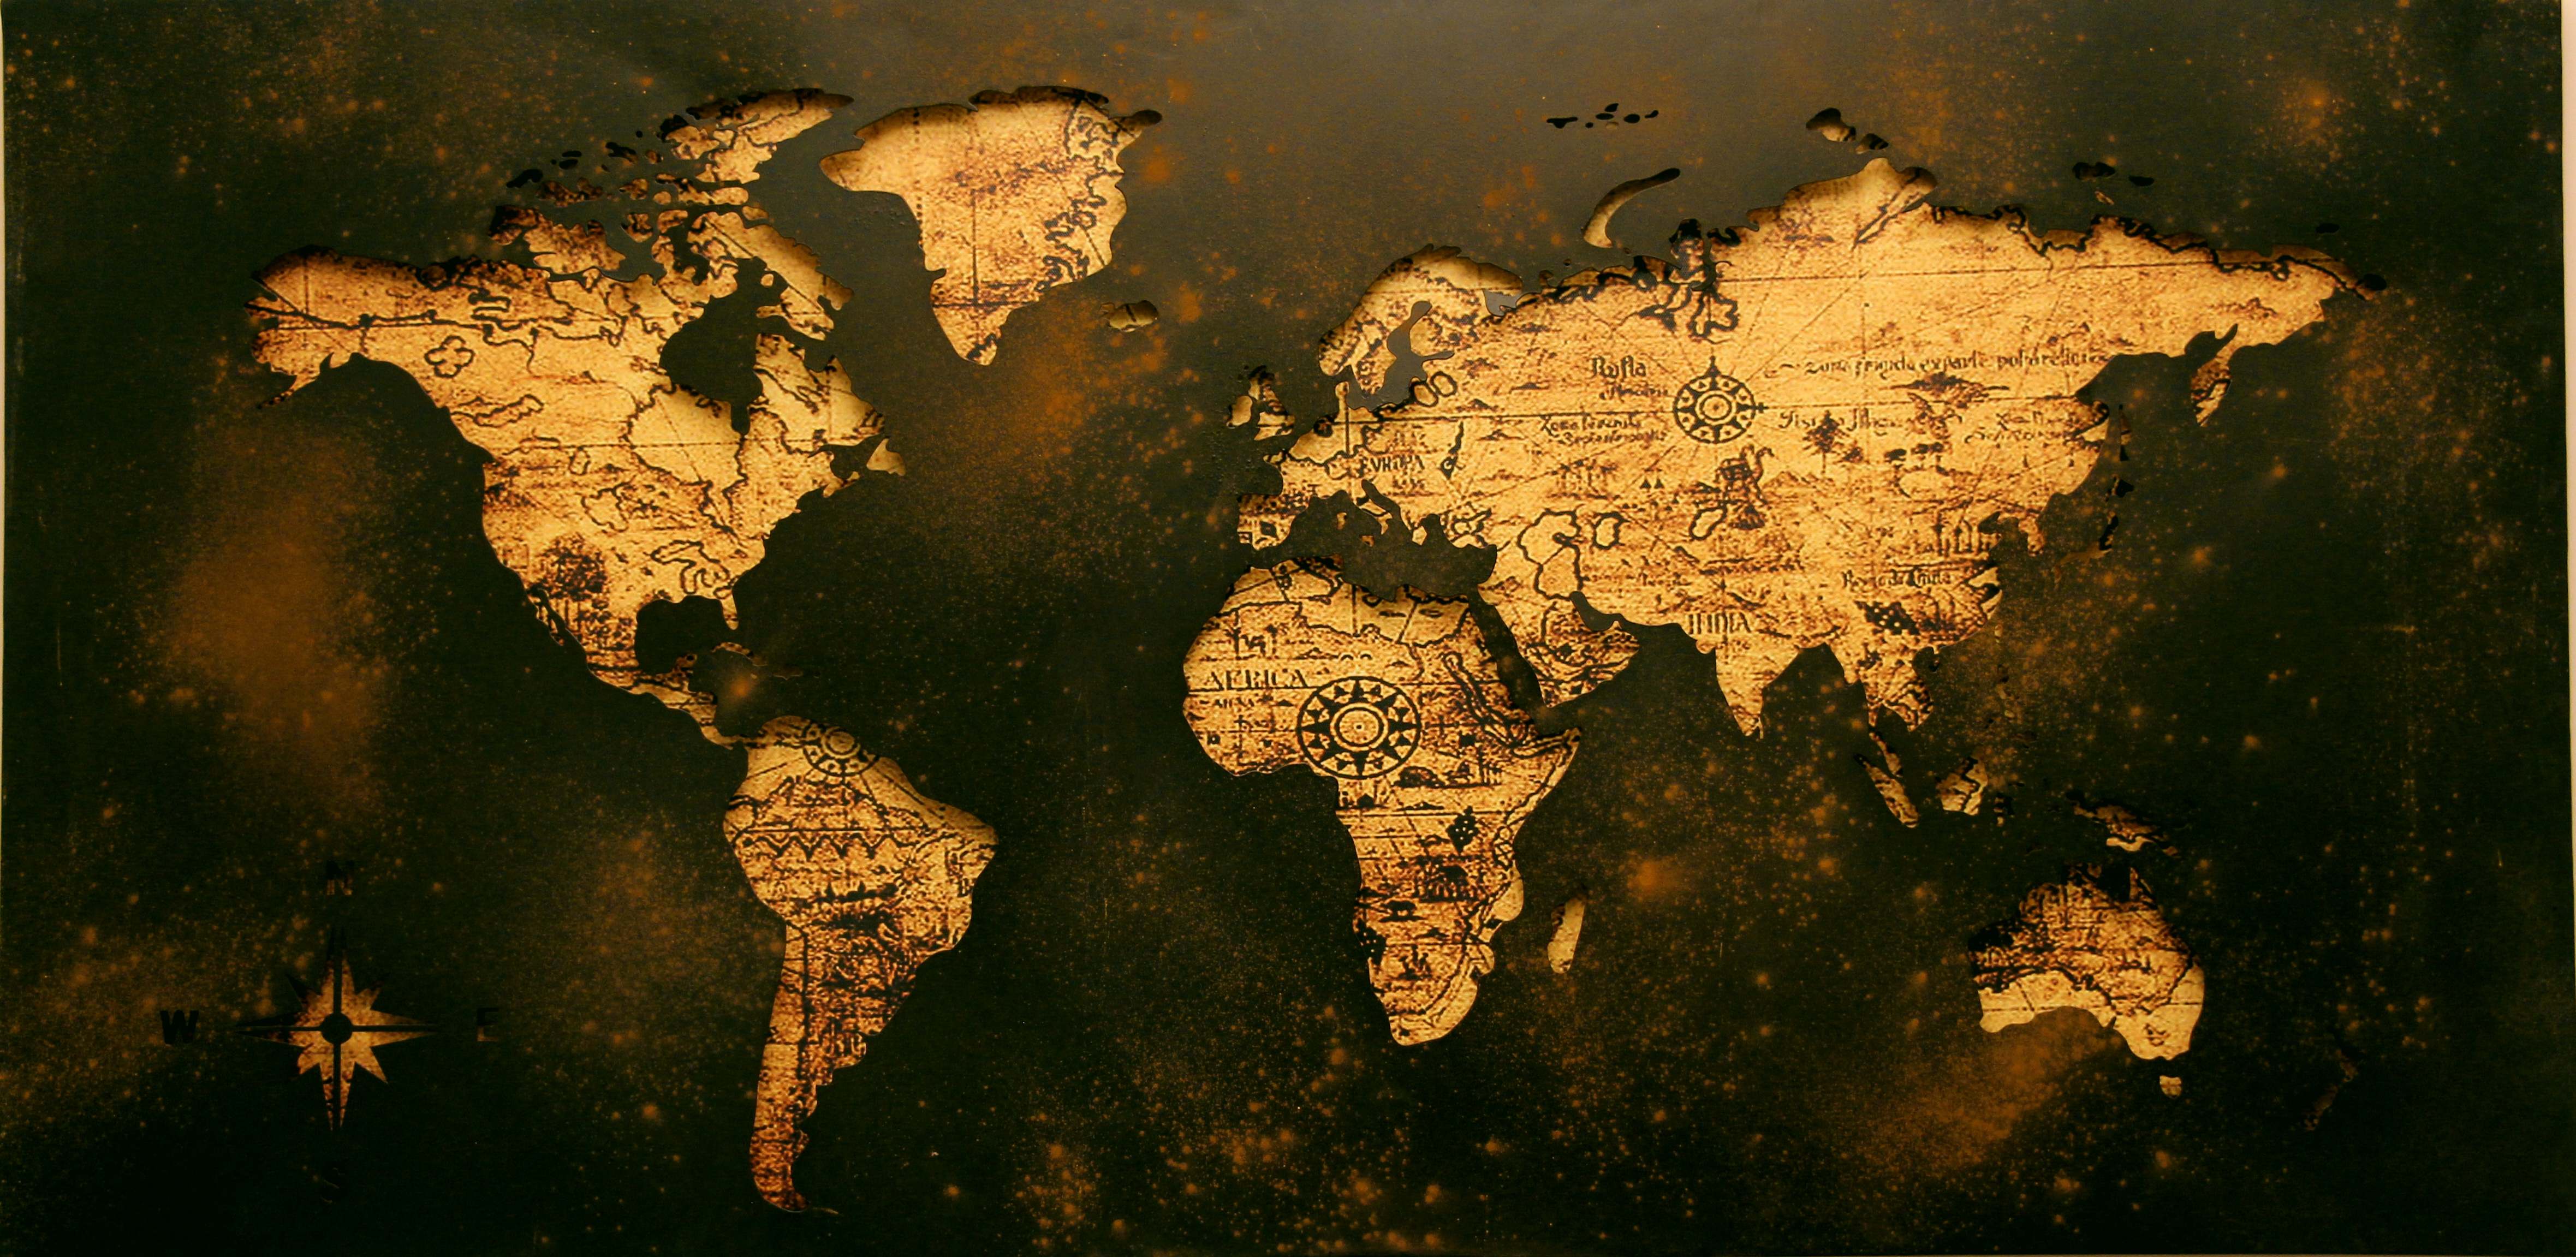 Free stock photos of world map pexels free stock photo of dark dirty map shape gumiabroncs Images